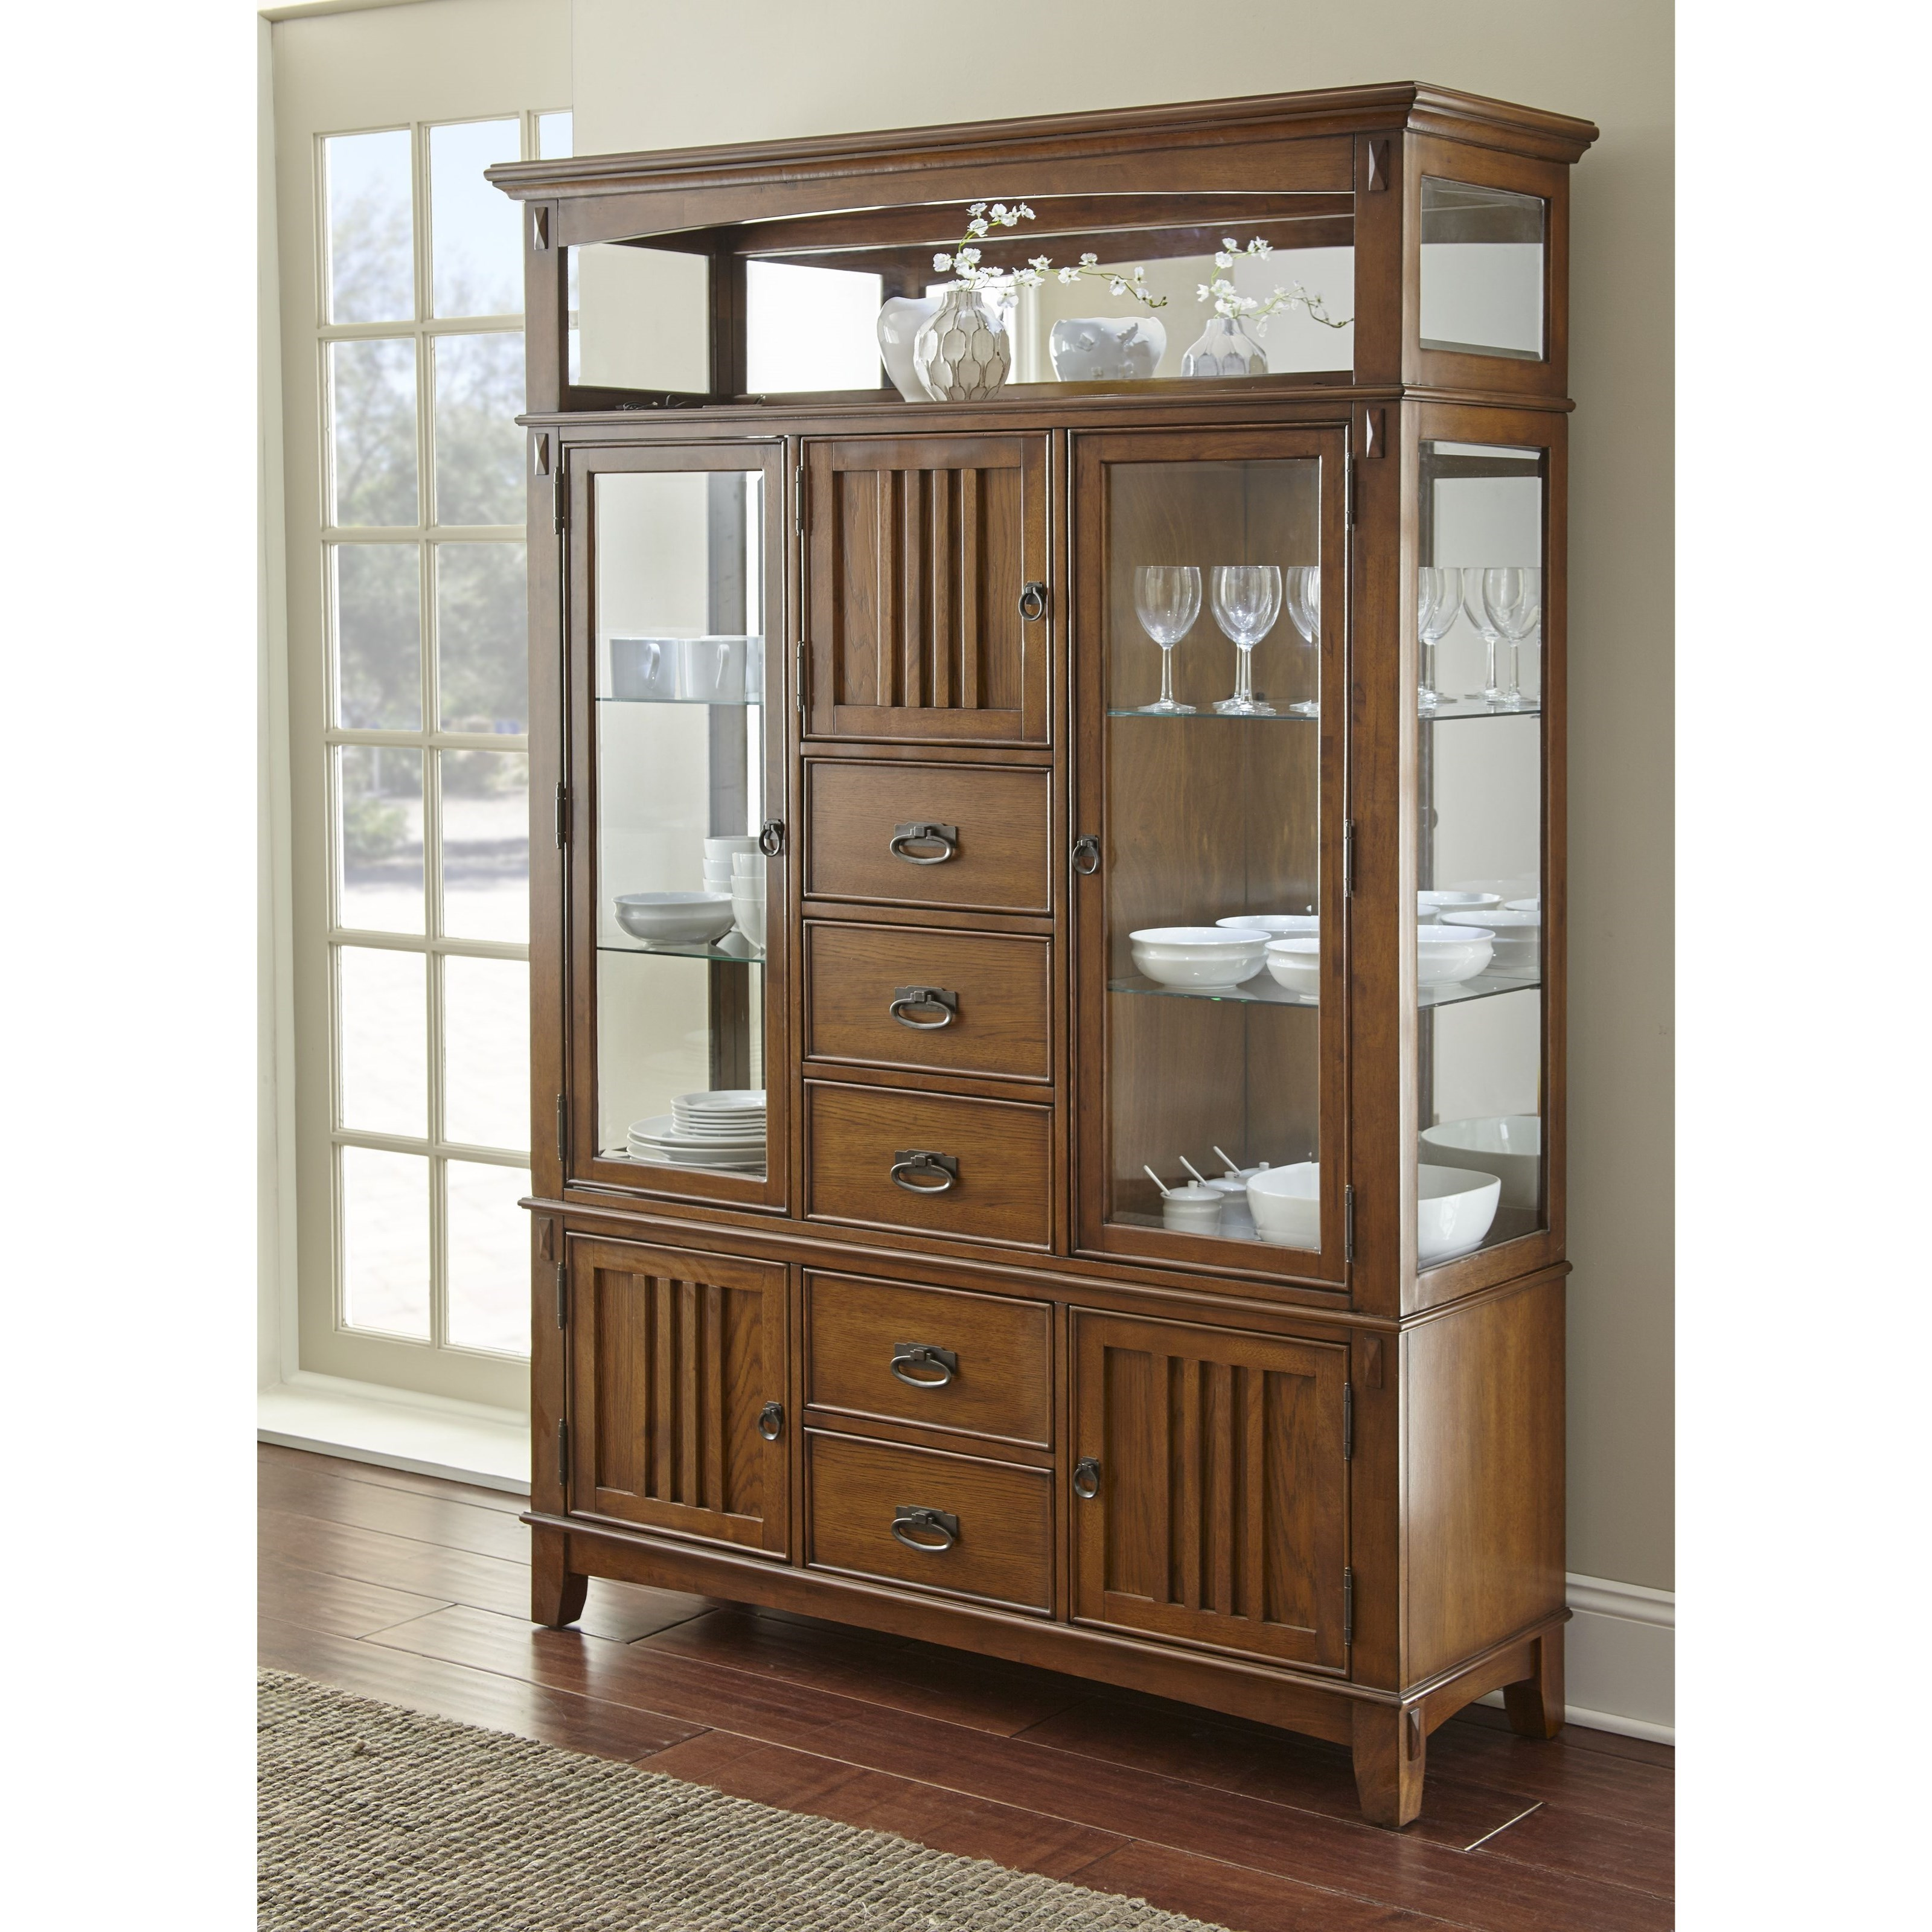 Steve Silver Larkin LK550 Mission Buffet And Hutch With Mirrored Back